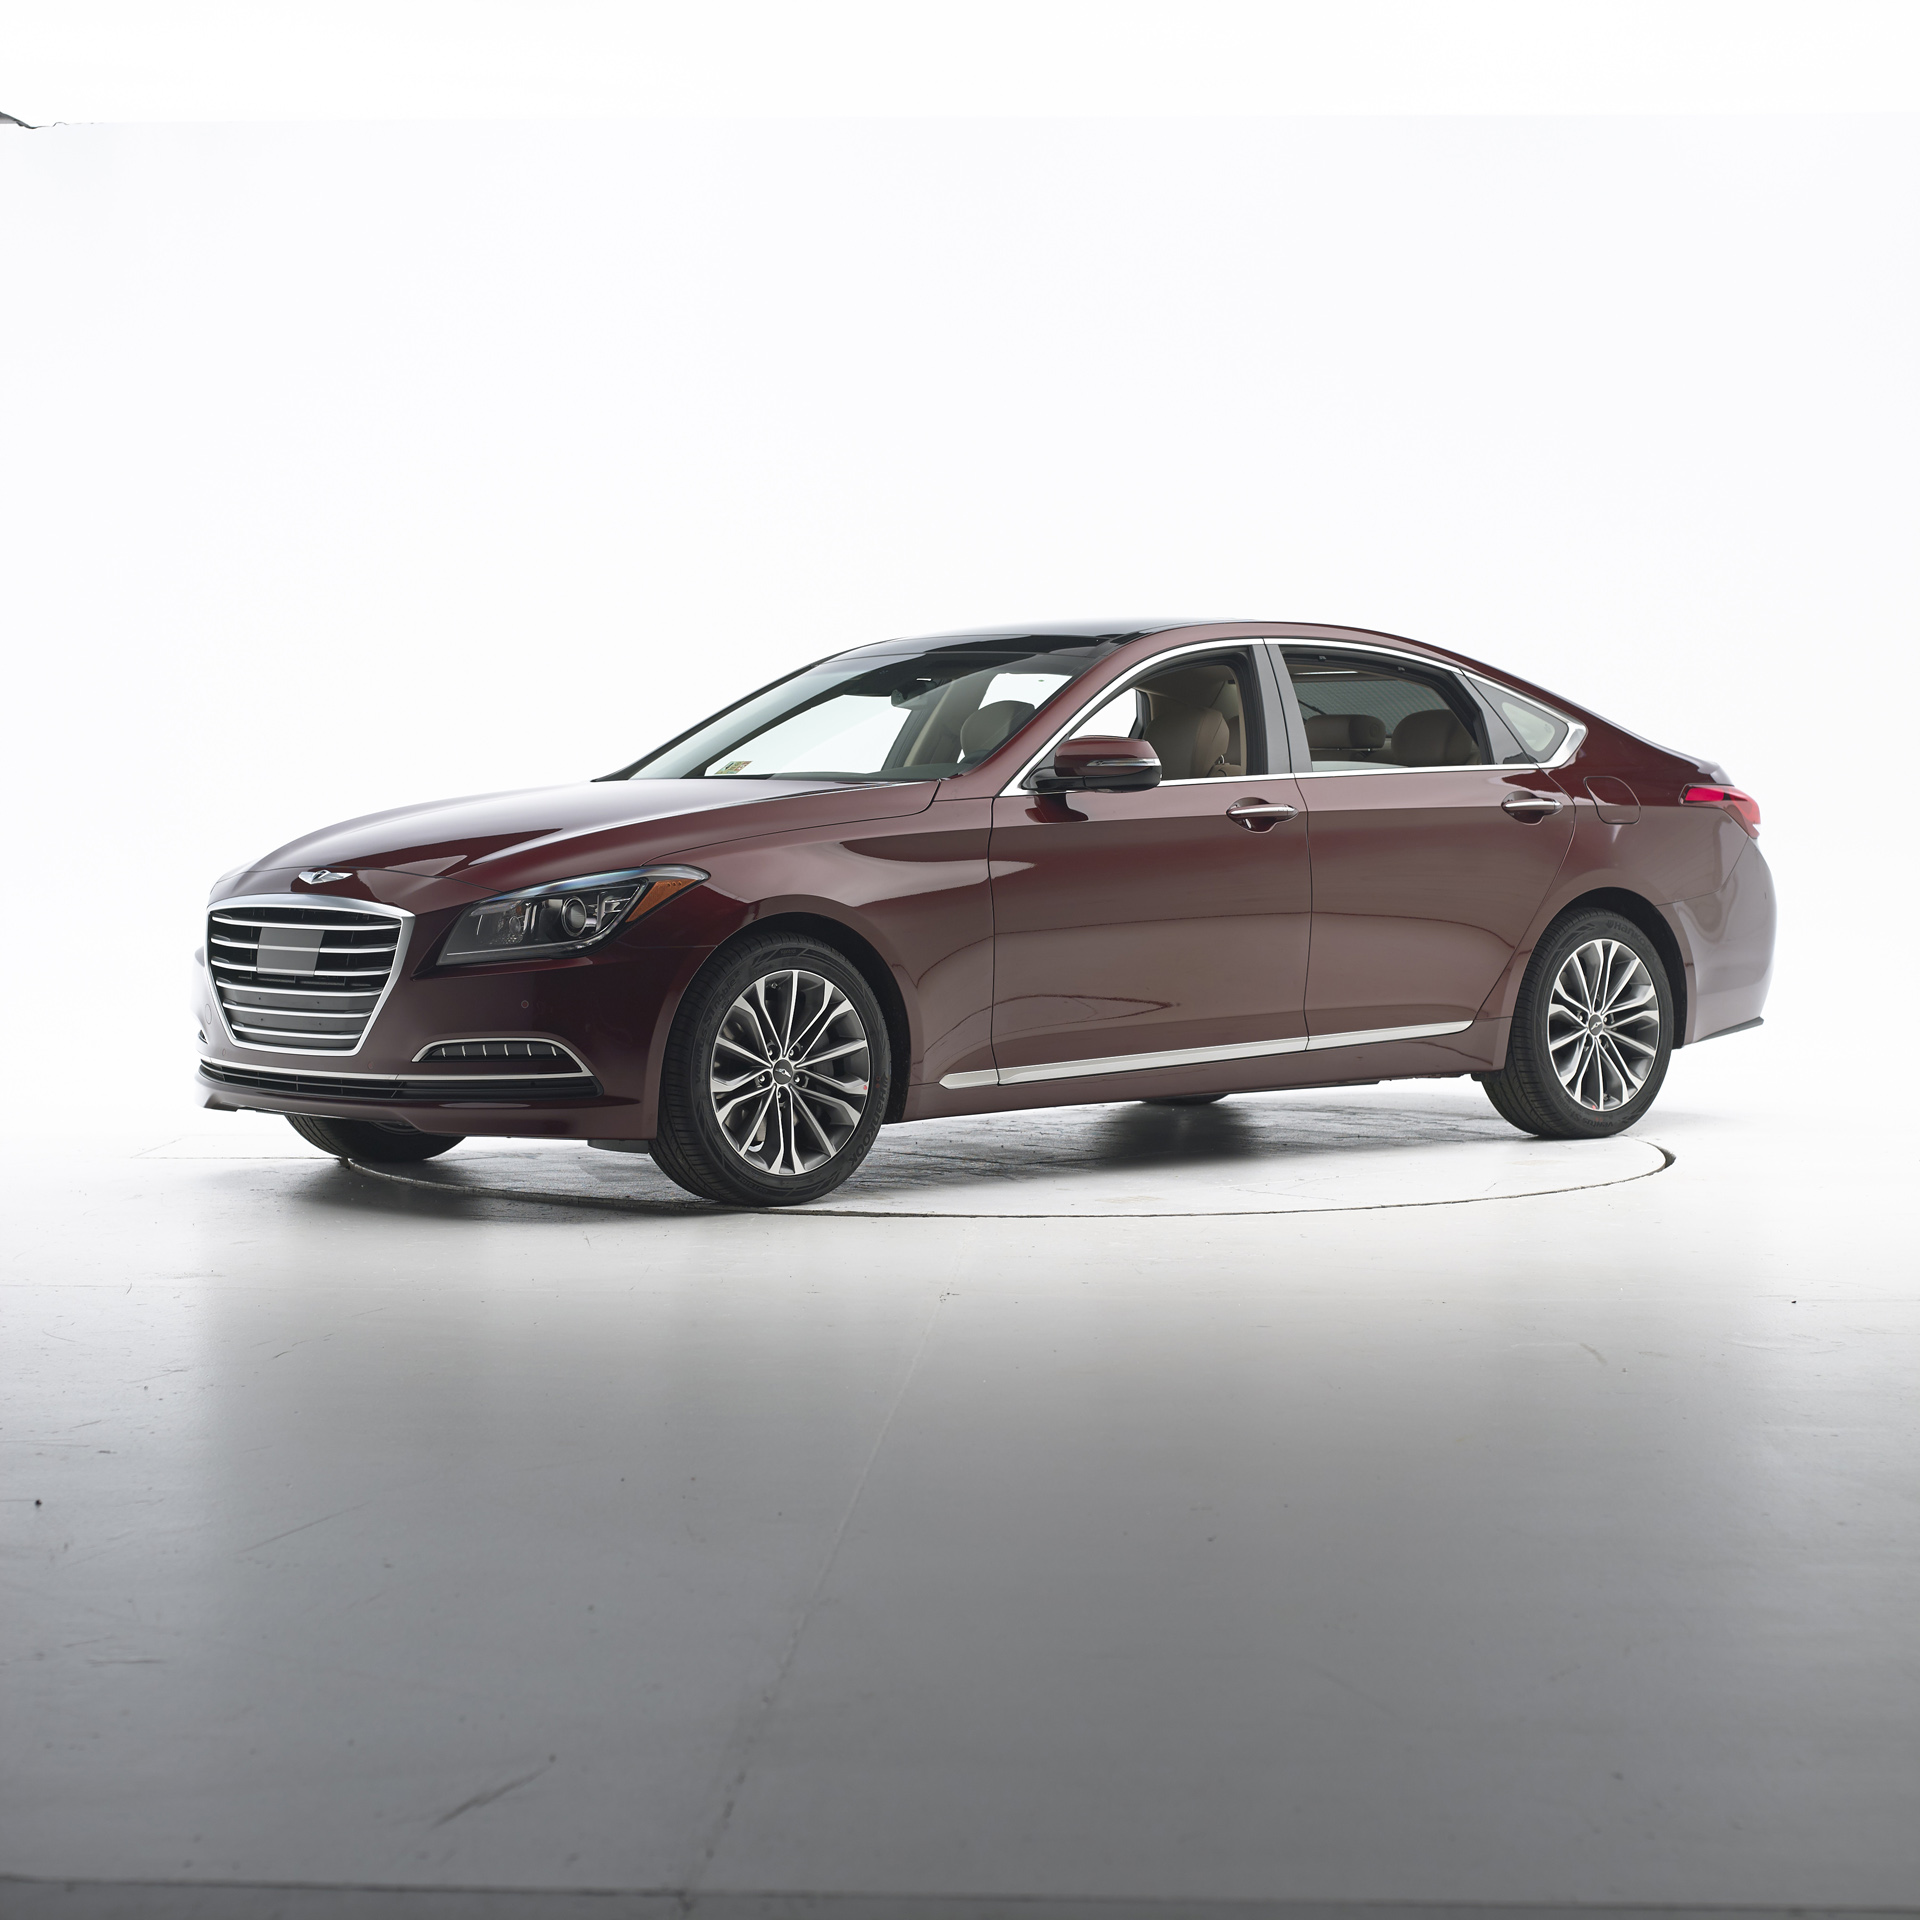 2015 Hyundai Genesis: Five-Star Scores, The Safest Car On